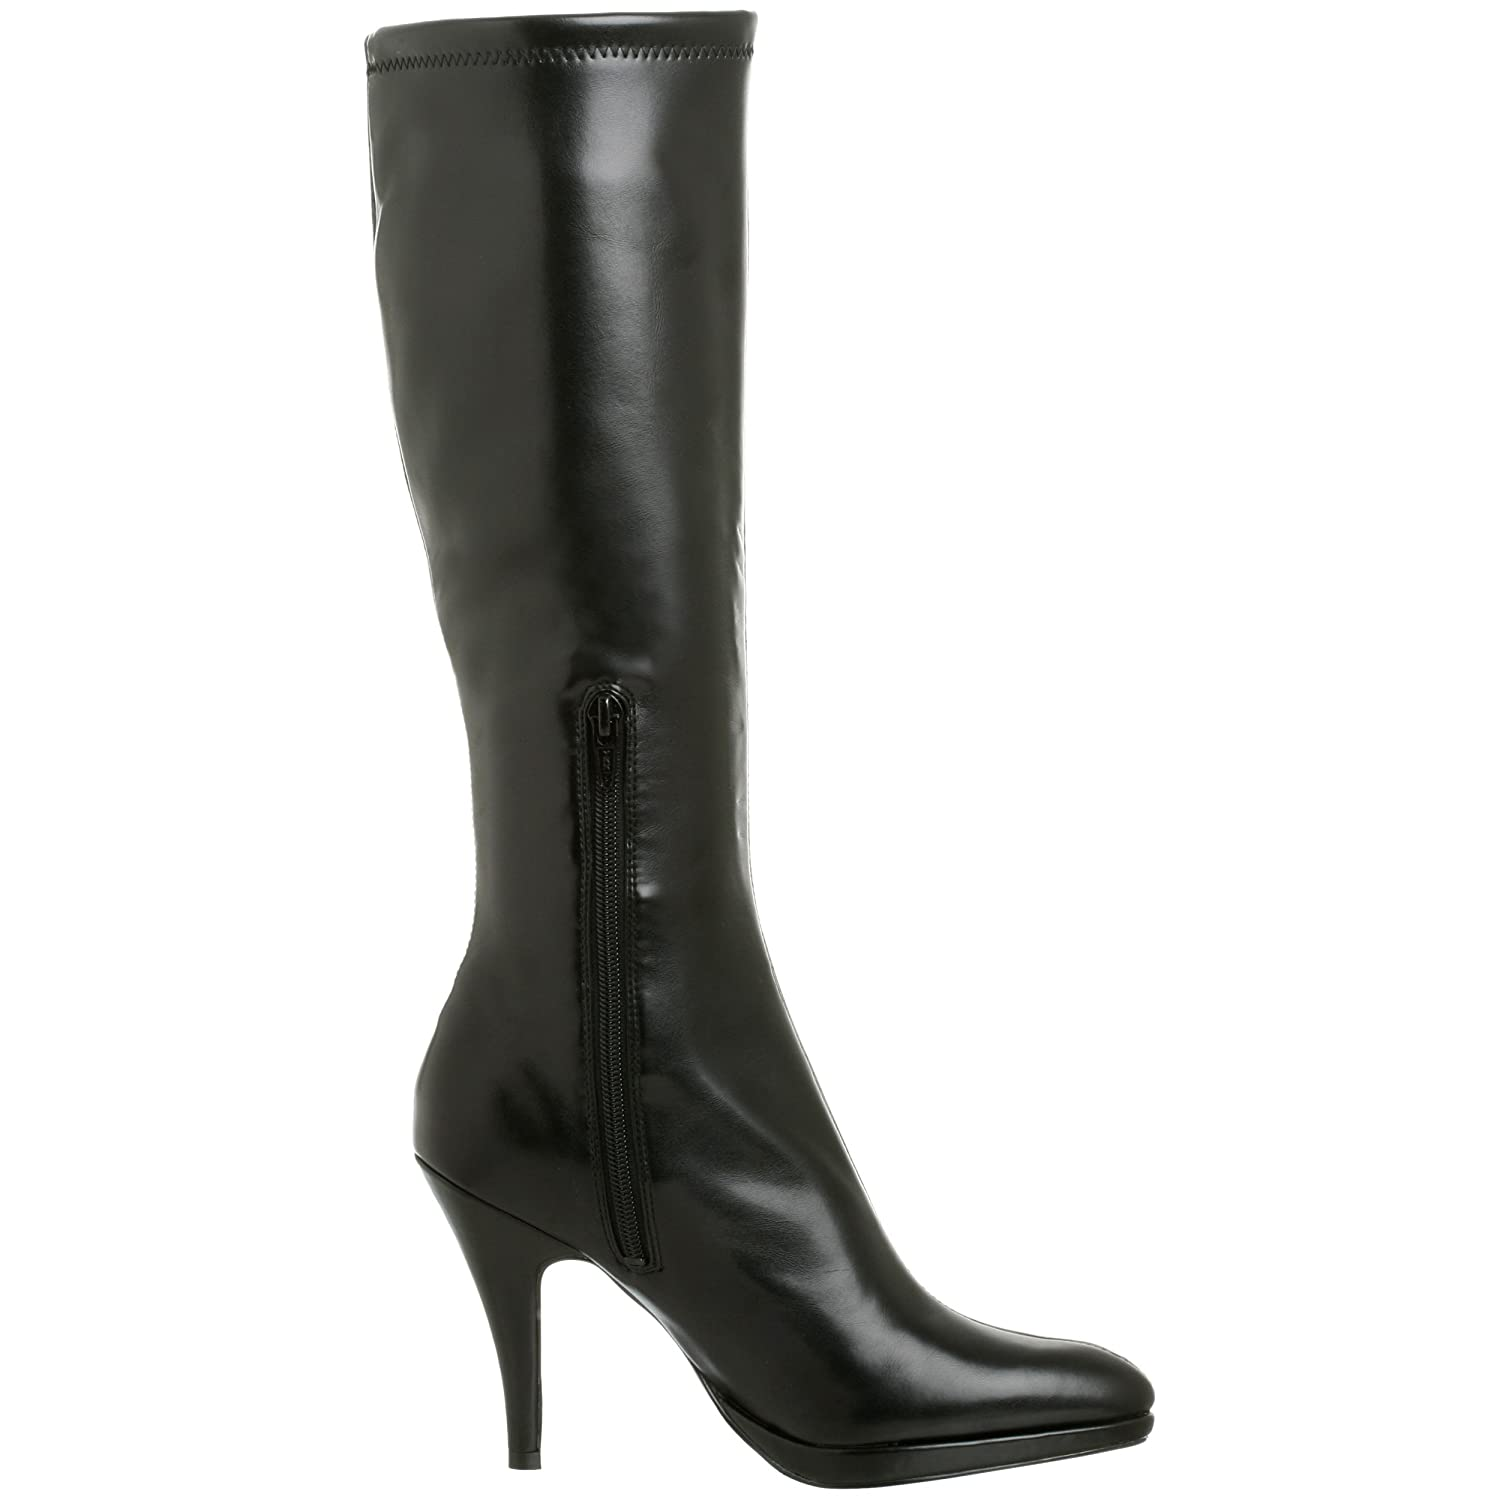 Endless.com: Bandolino Women's Ozzy High Shaft Dress Boot: Boots